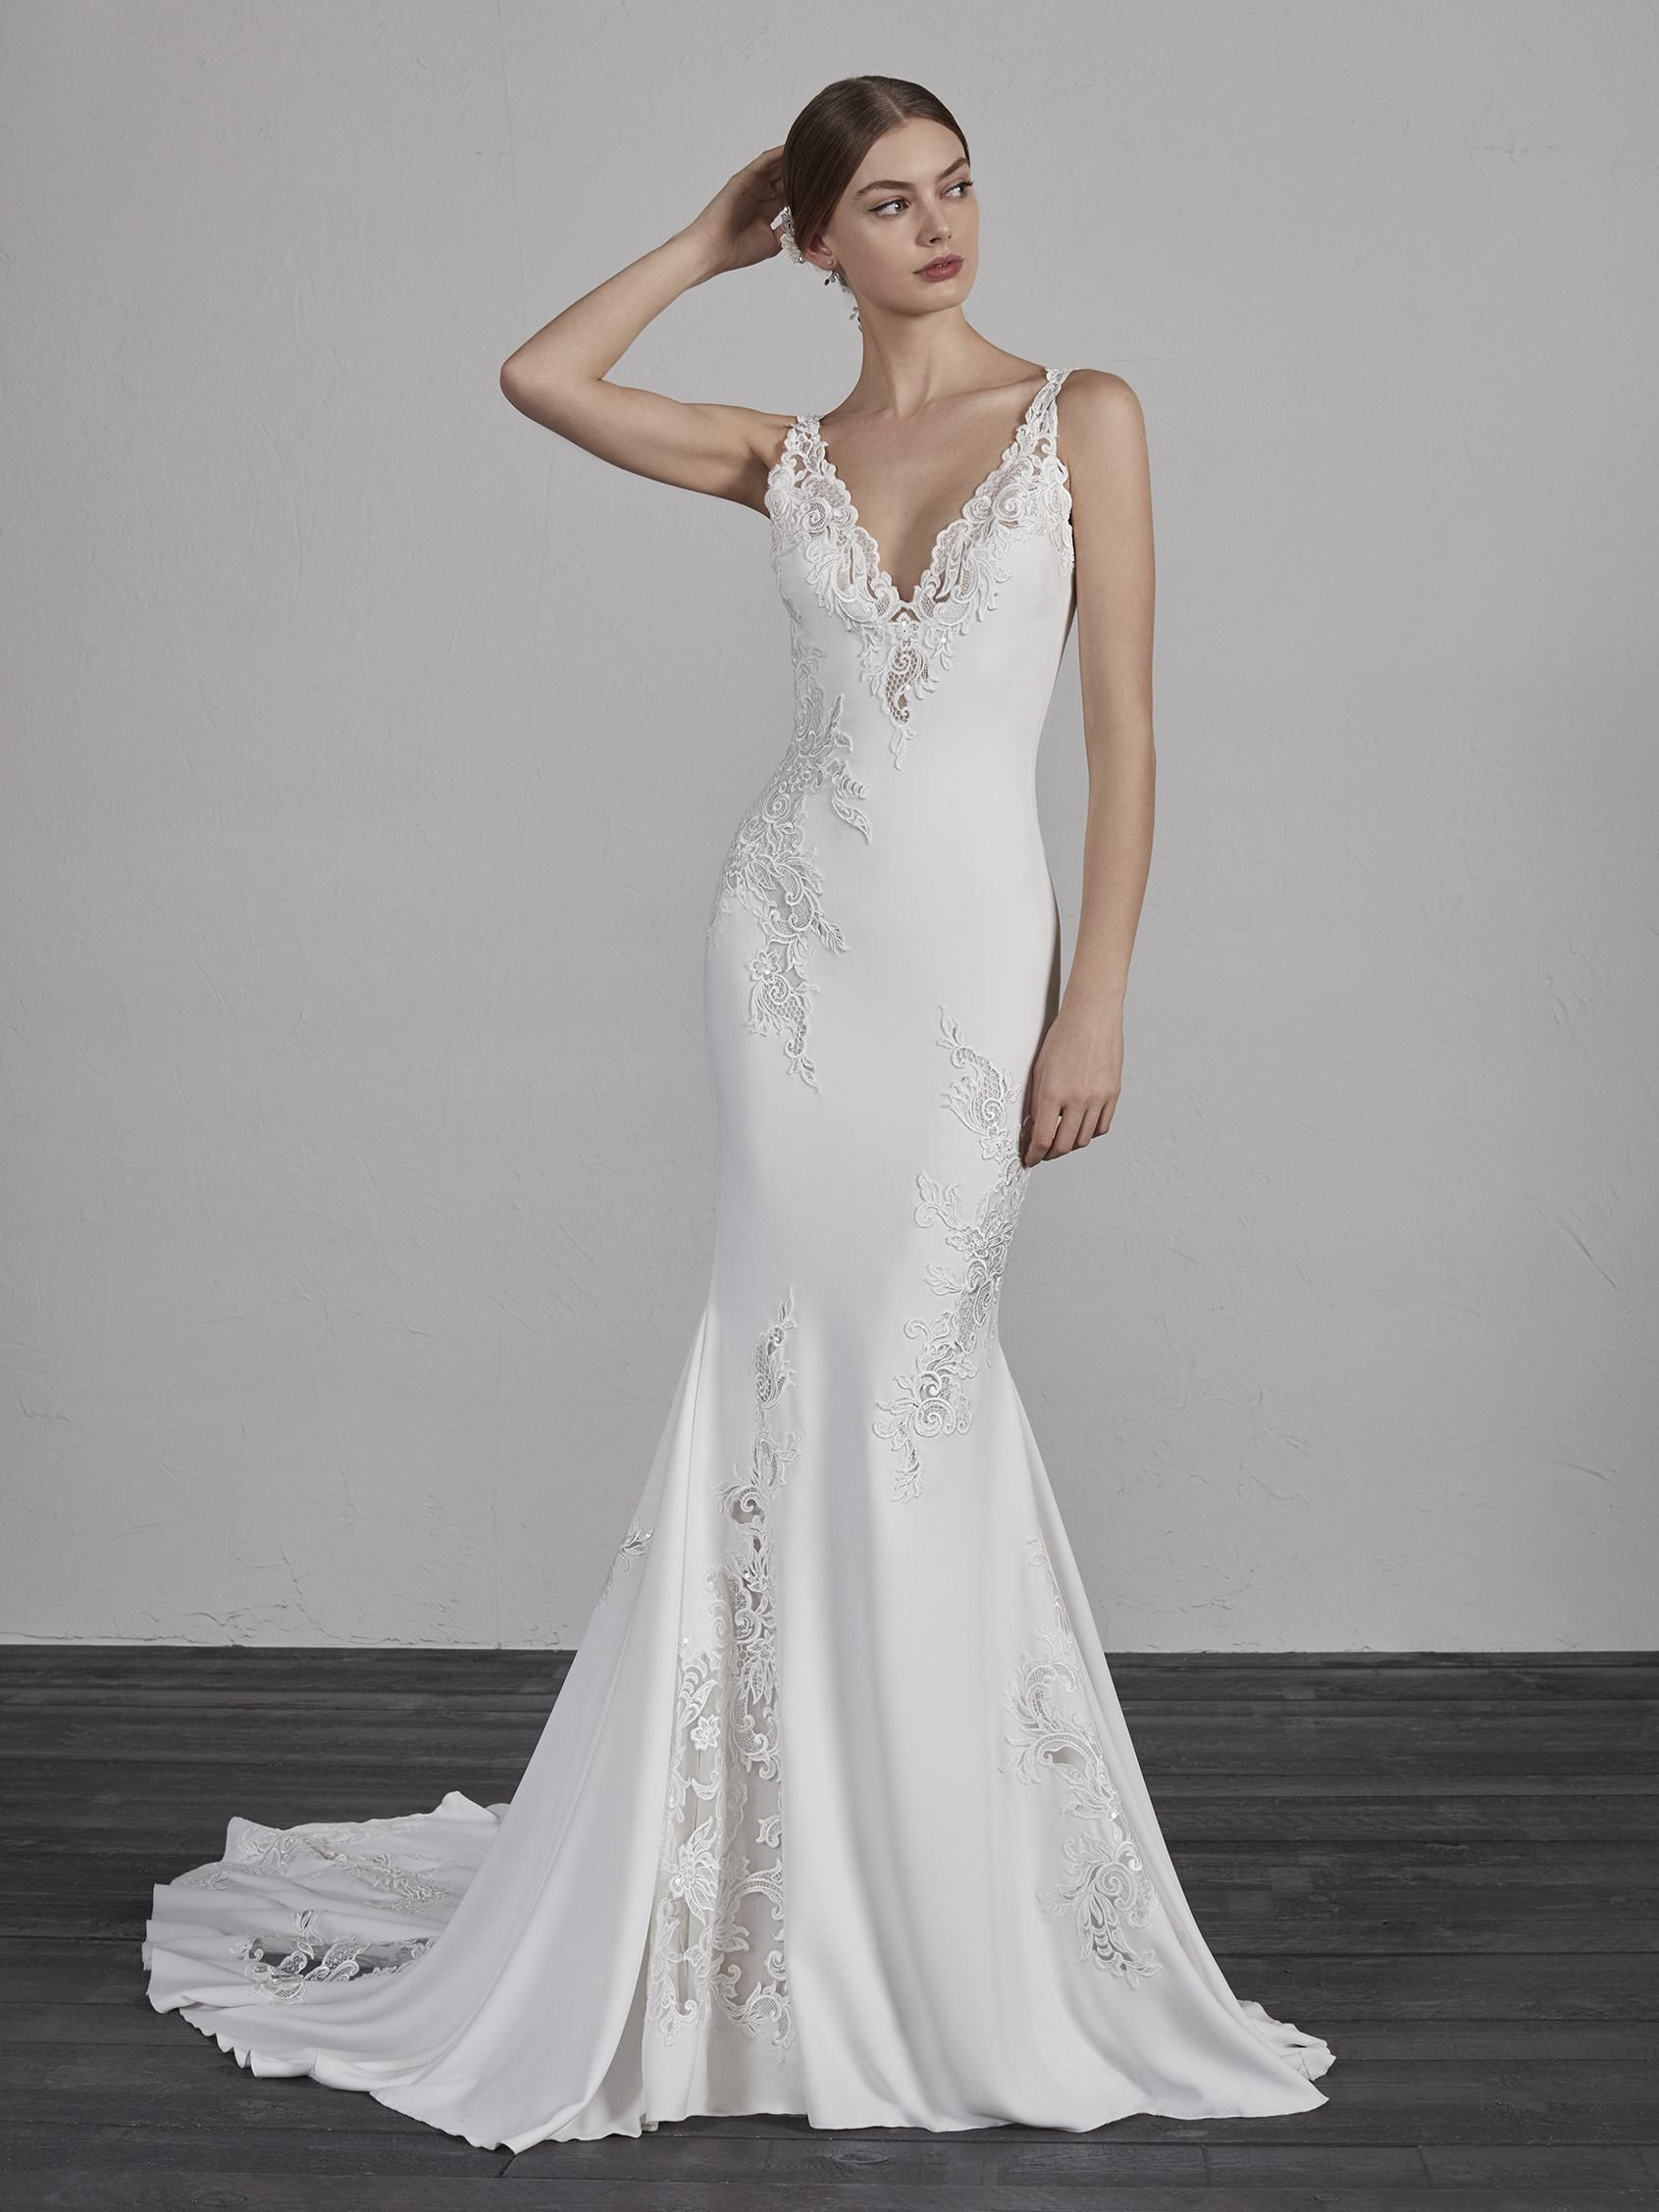 Lace over tulle wedding dress january 2019 The crepe crafted with threadembroidered appliqués and beading